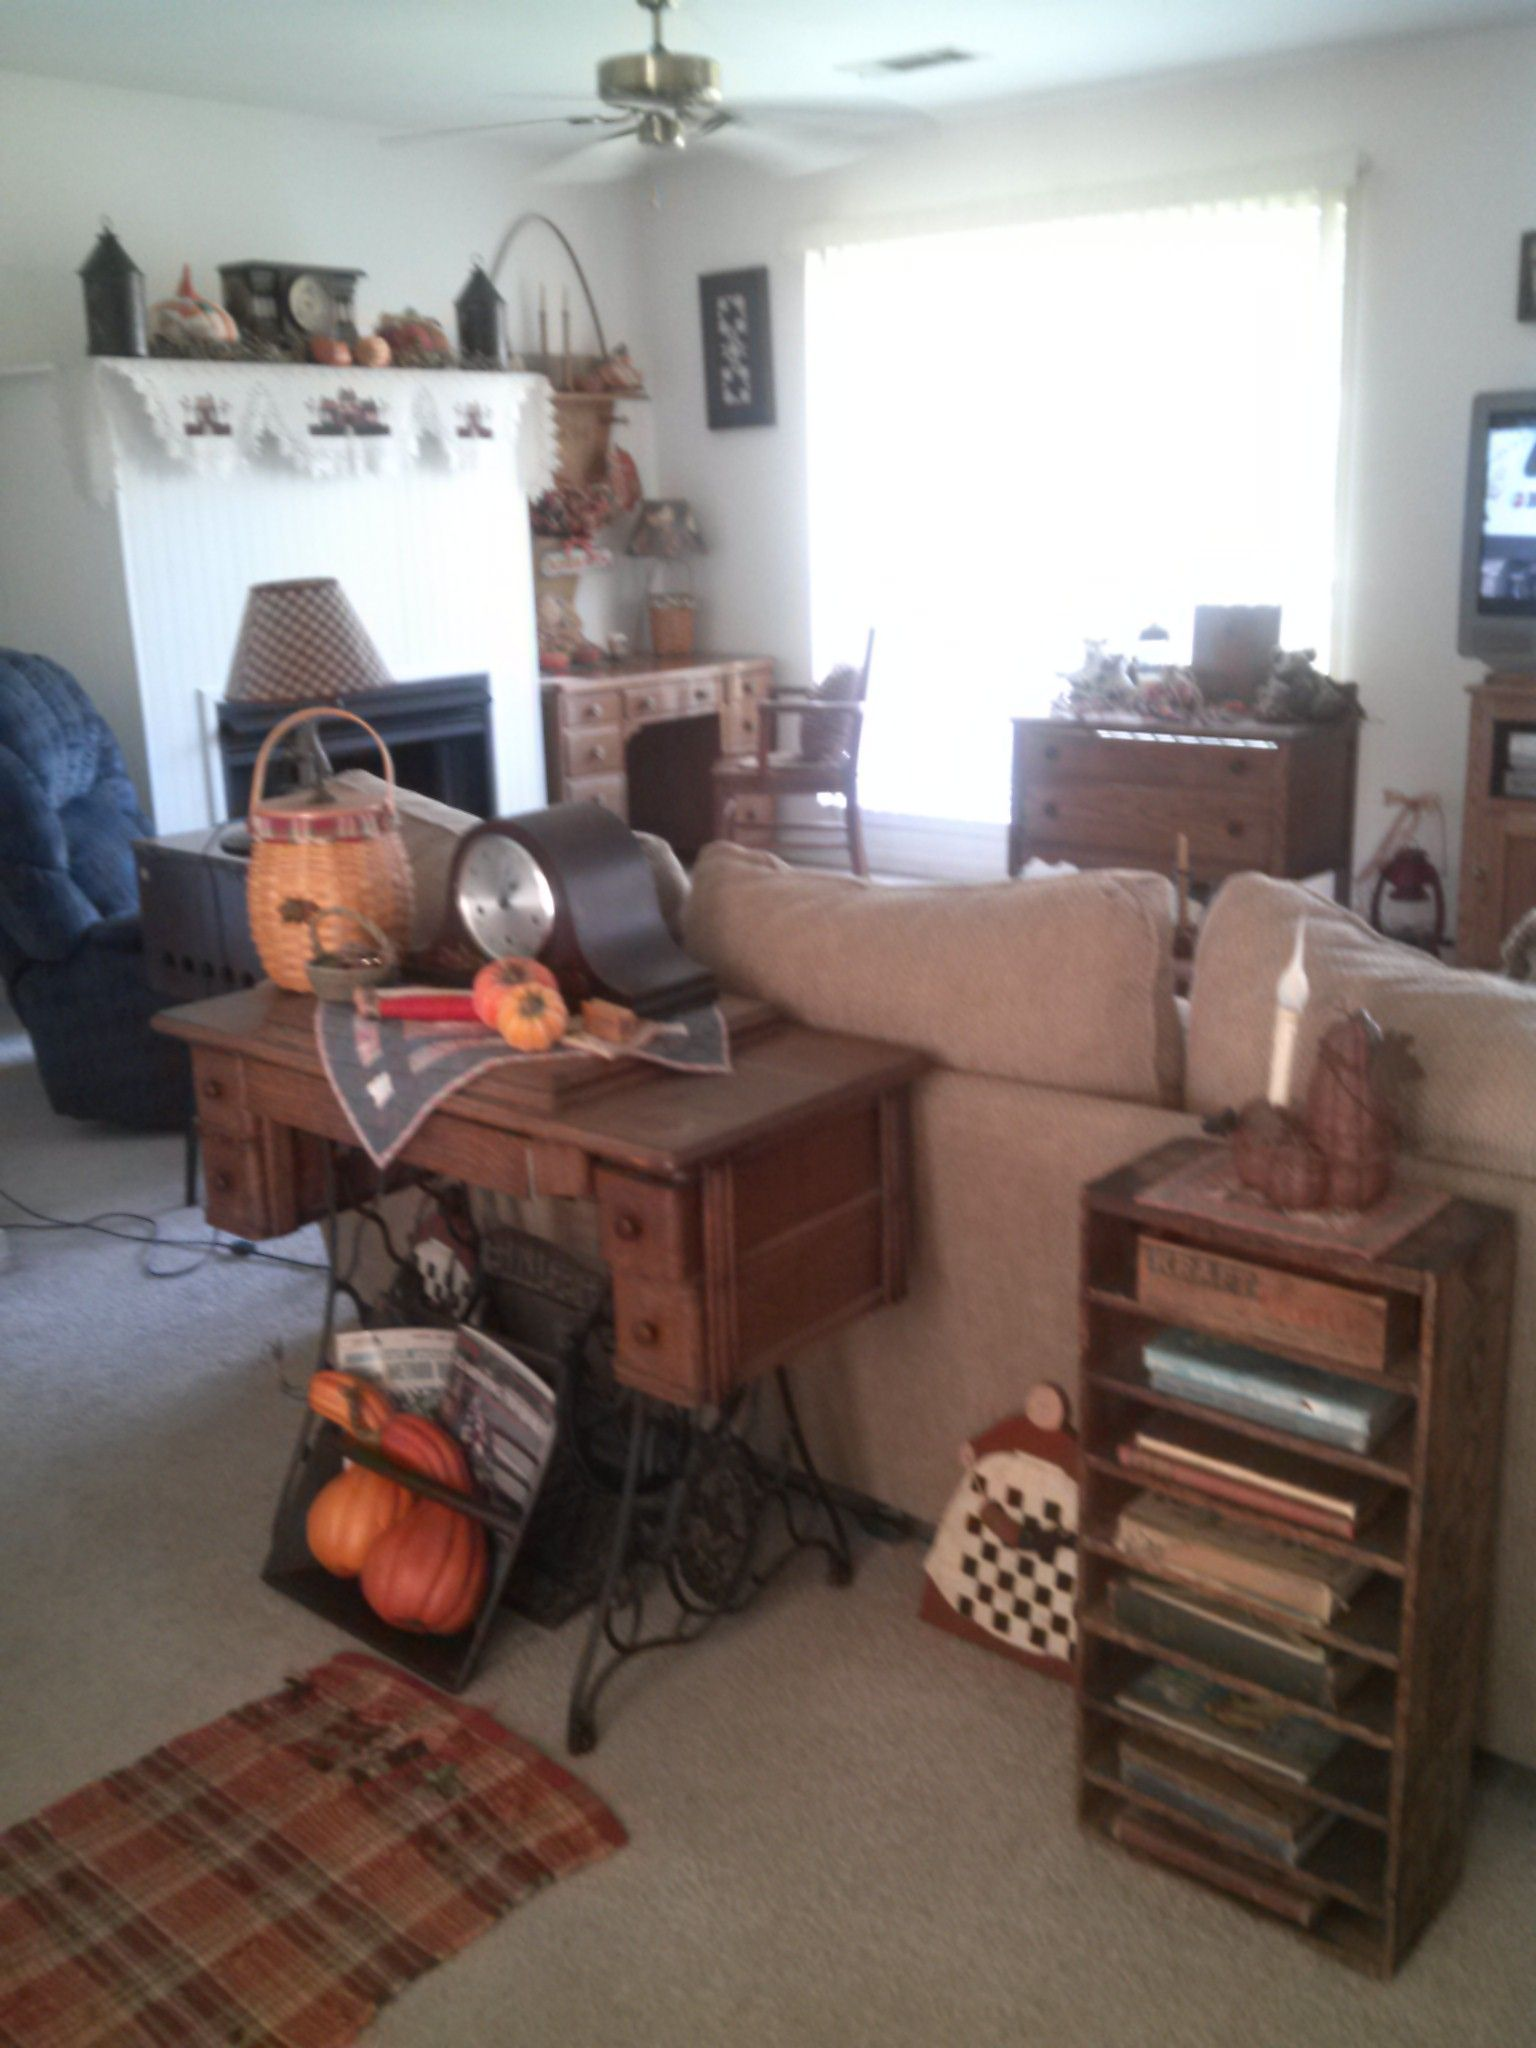 Antique sewing machine with fall punkins